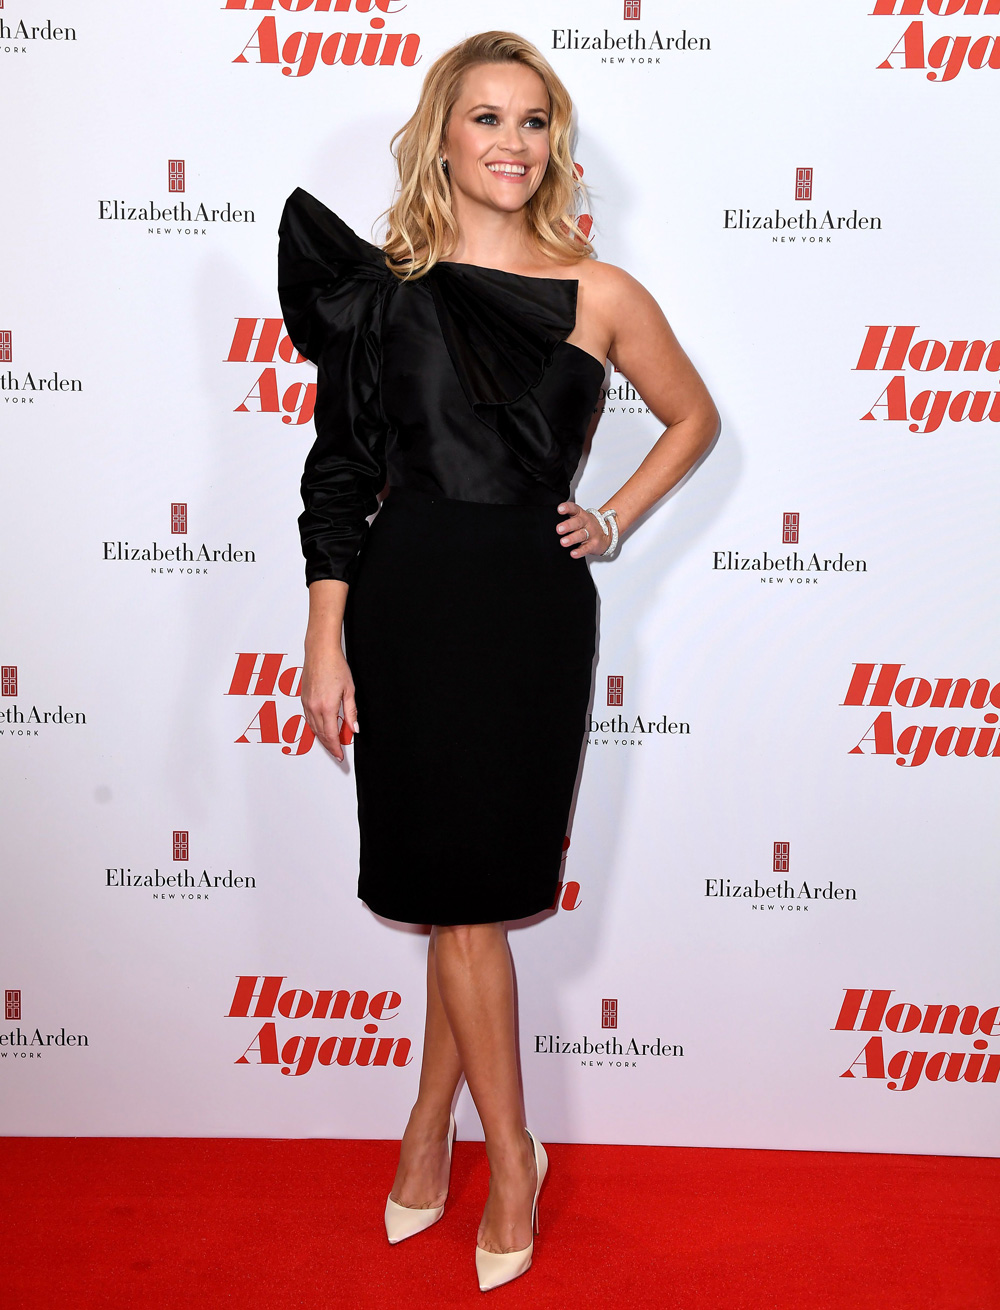 Reese Witherspoon Shines In Black At The Home Again Film Premiere